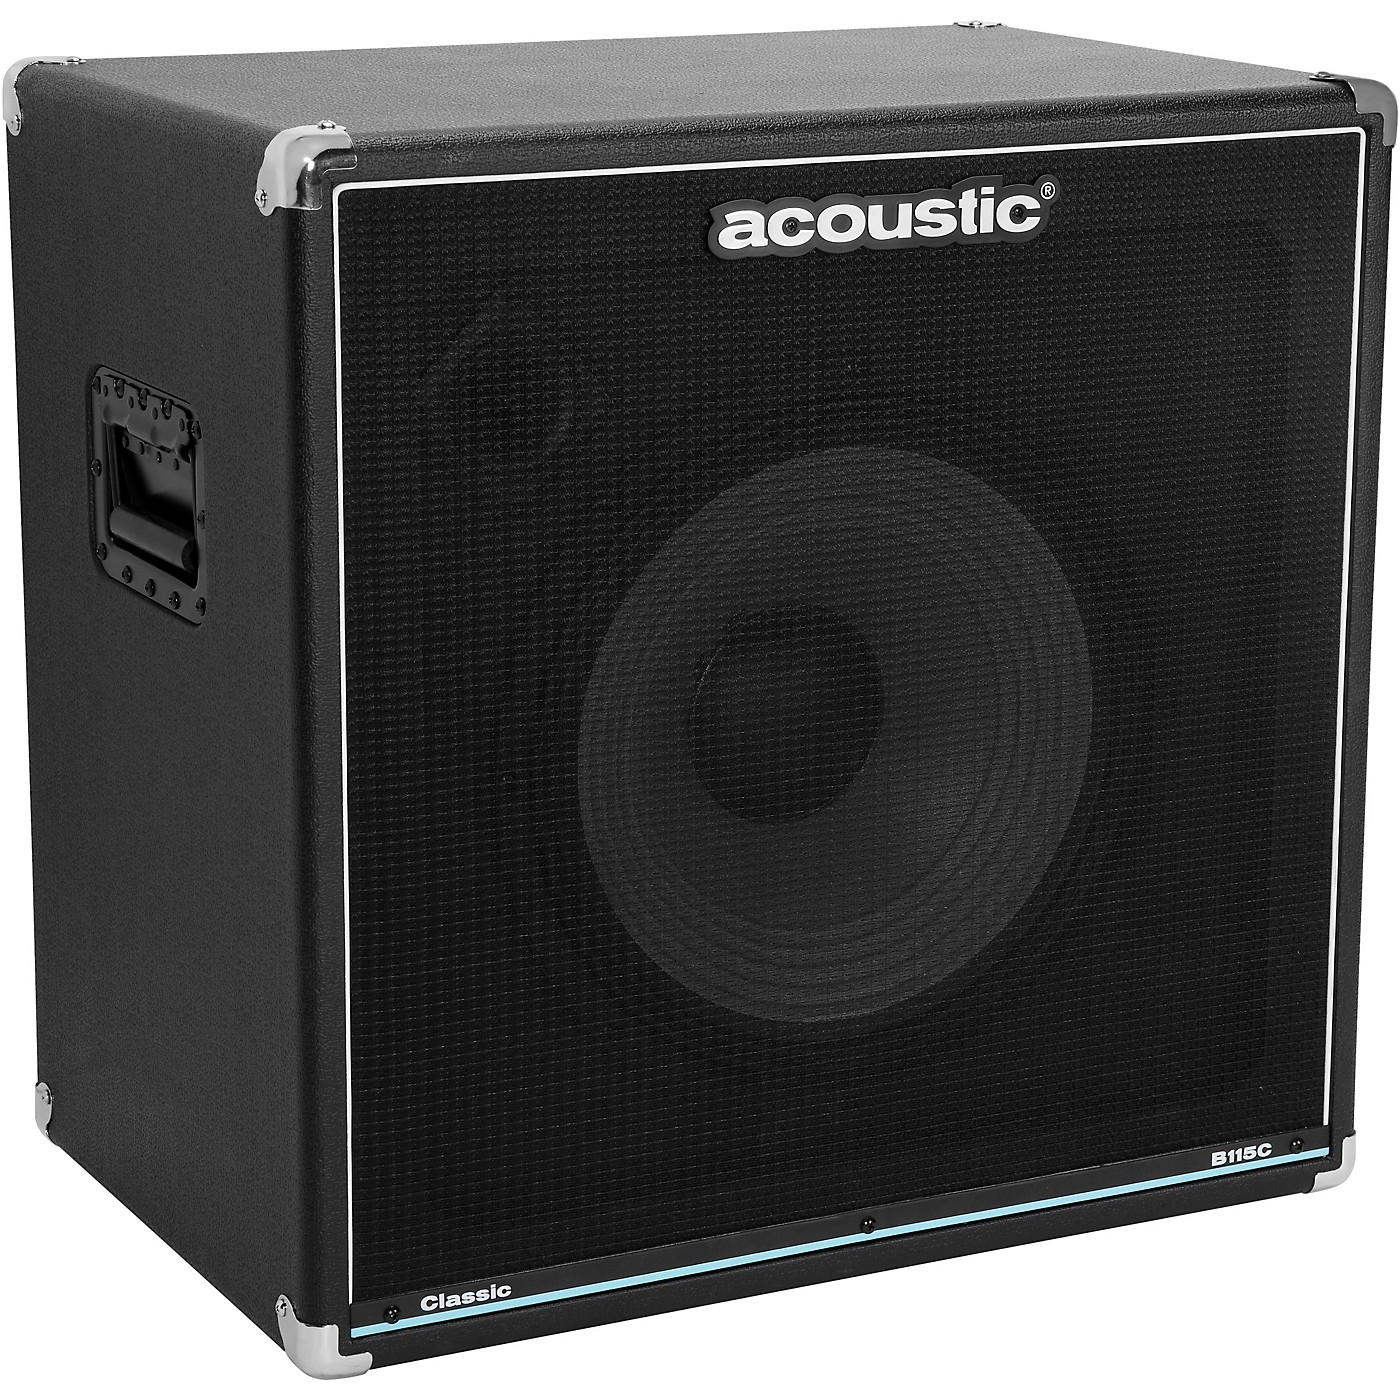 Acoustic B115C Classic 1X15 Bass Speaker Cabinet thumbnail